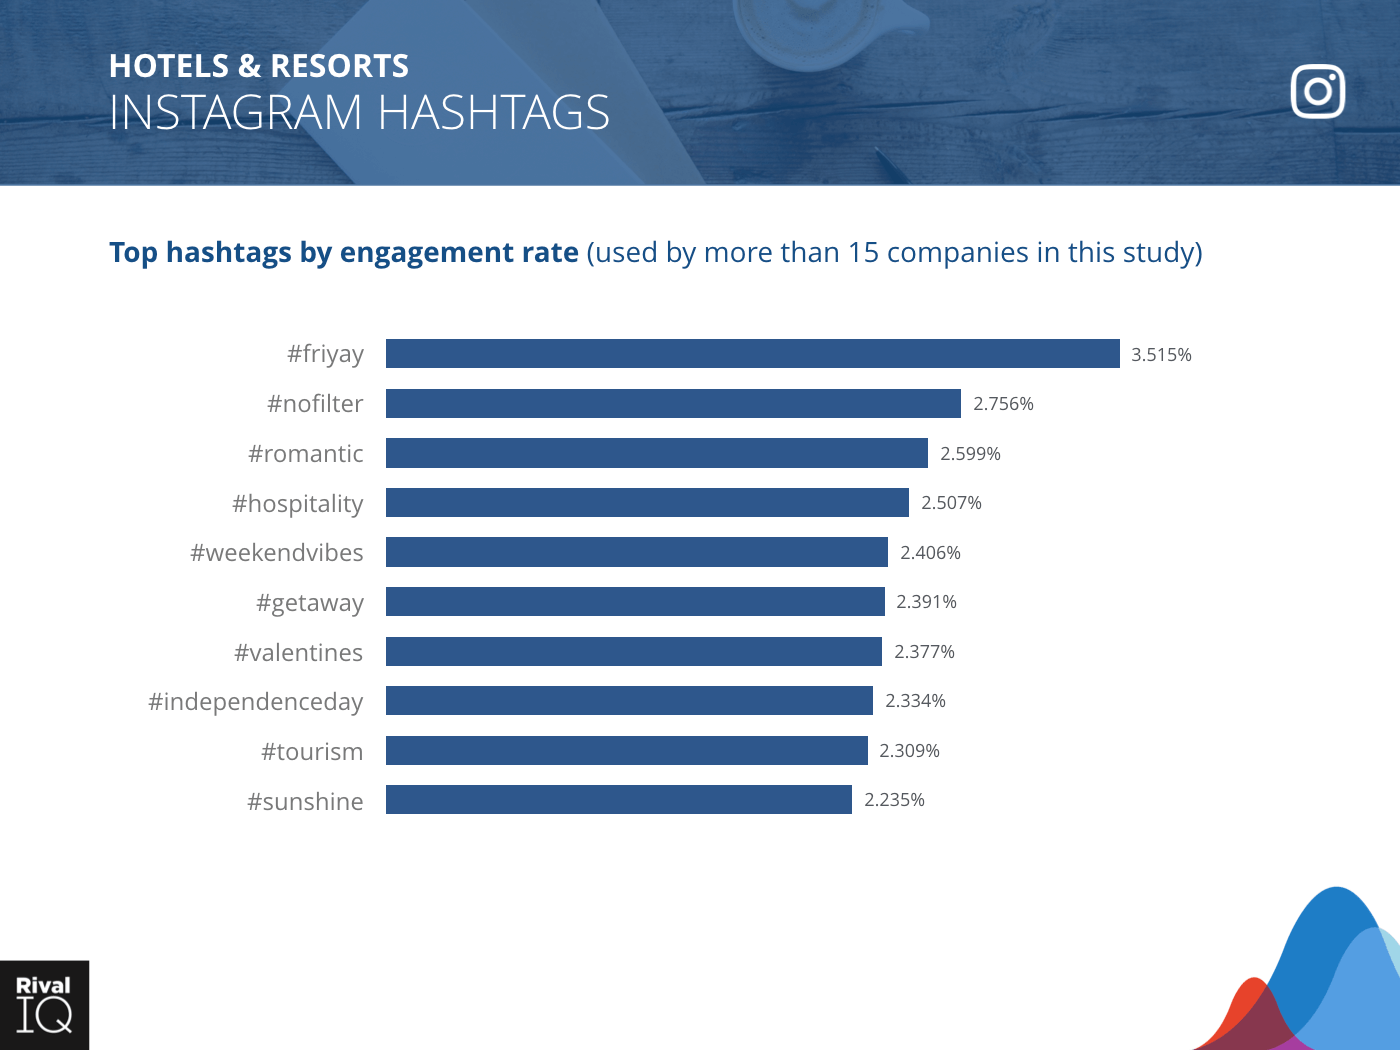 Hotels & Resorts Industry: bar graph, top hashtags by engagement rate on Instagram